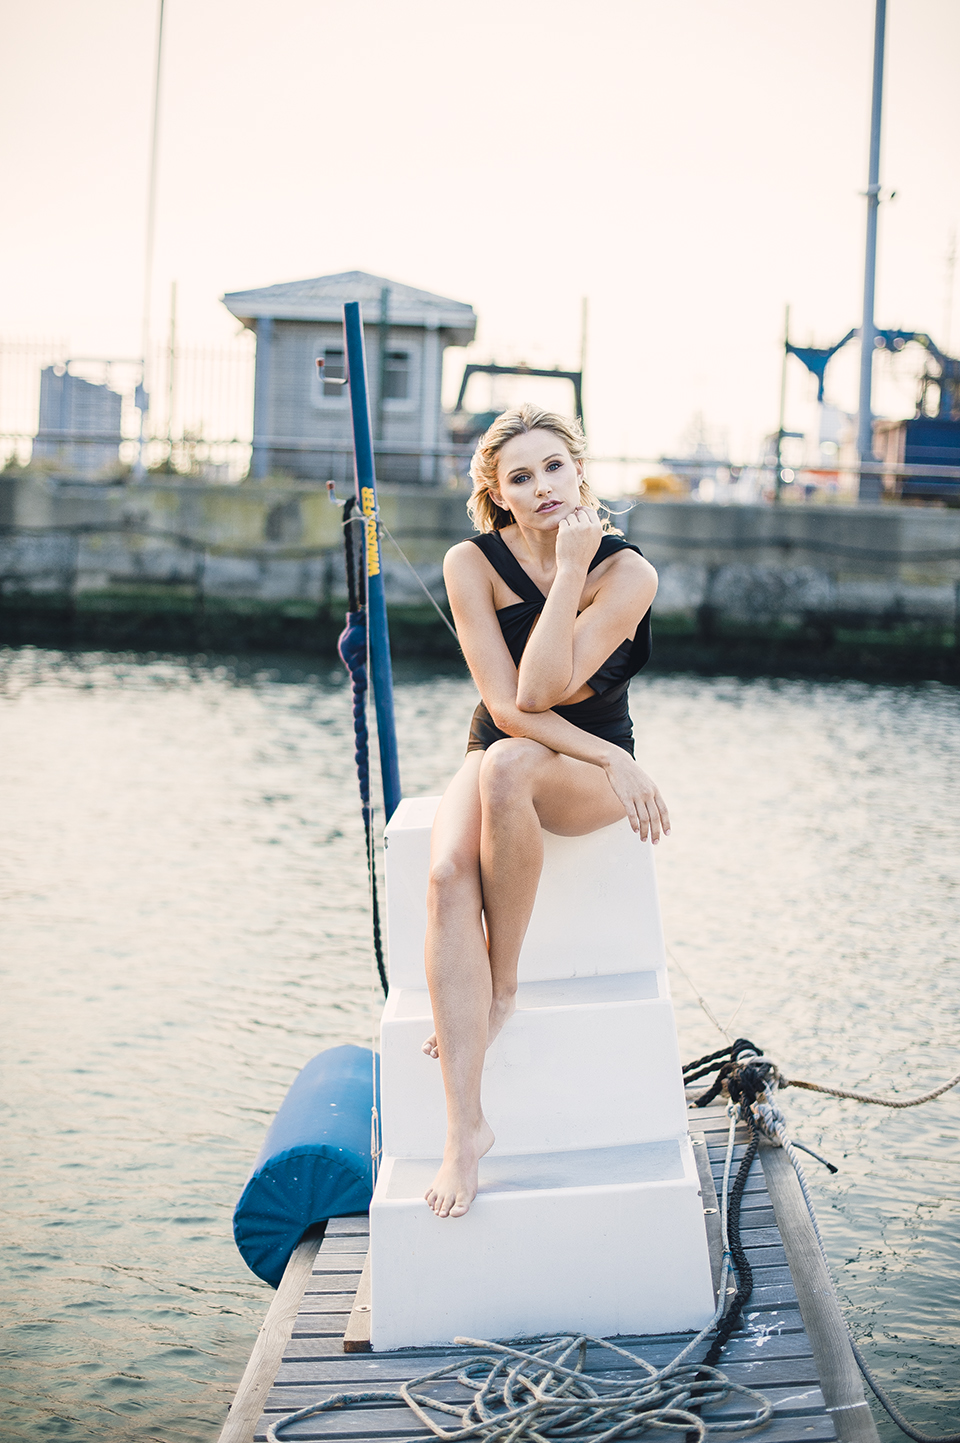 RyanParker_CapeTown_Photographer_Editorial_Fashion_Yacht_Nautical_RyanParker_CapeTown_Photographer_Editorial_Fashion_Yacht_Nautical_DSC_1652.jpg